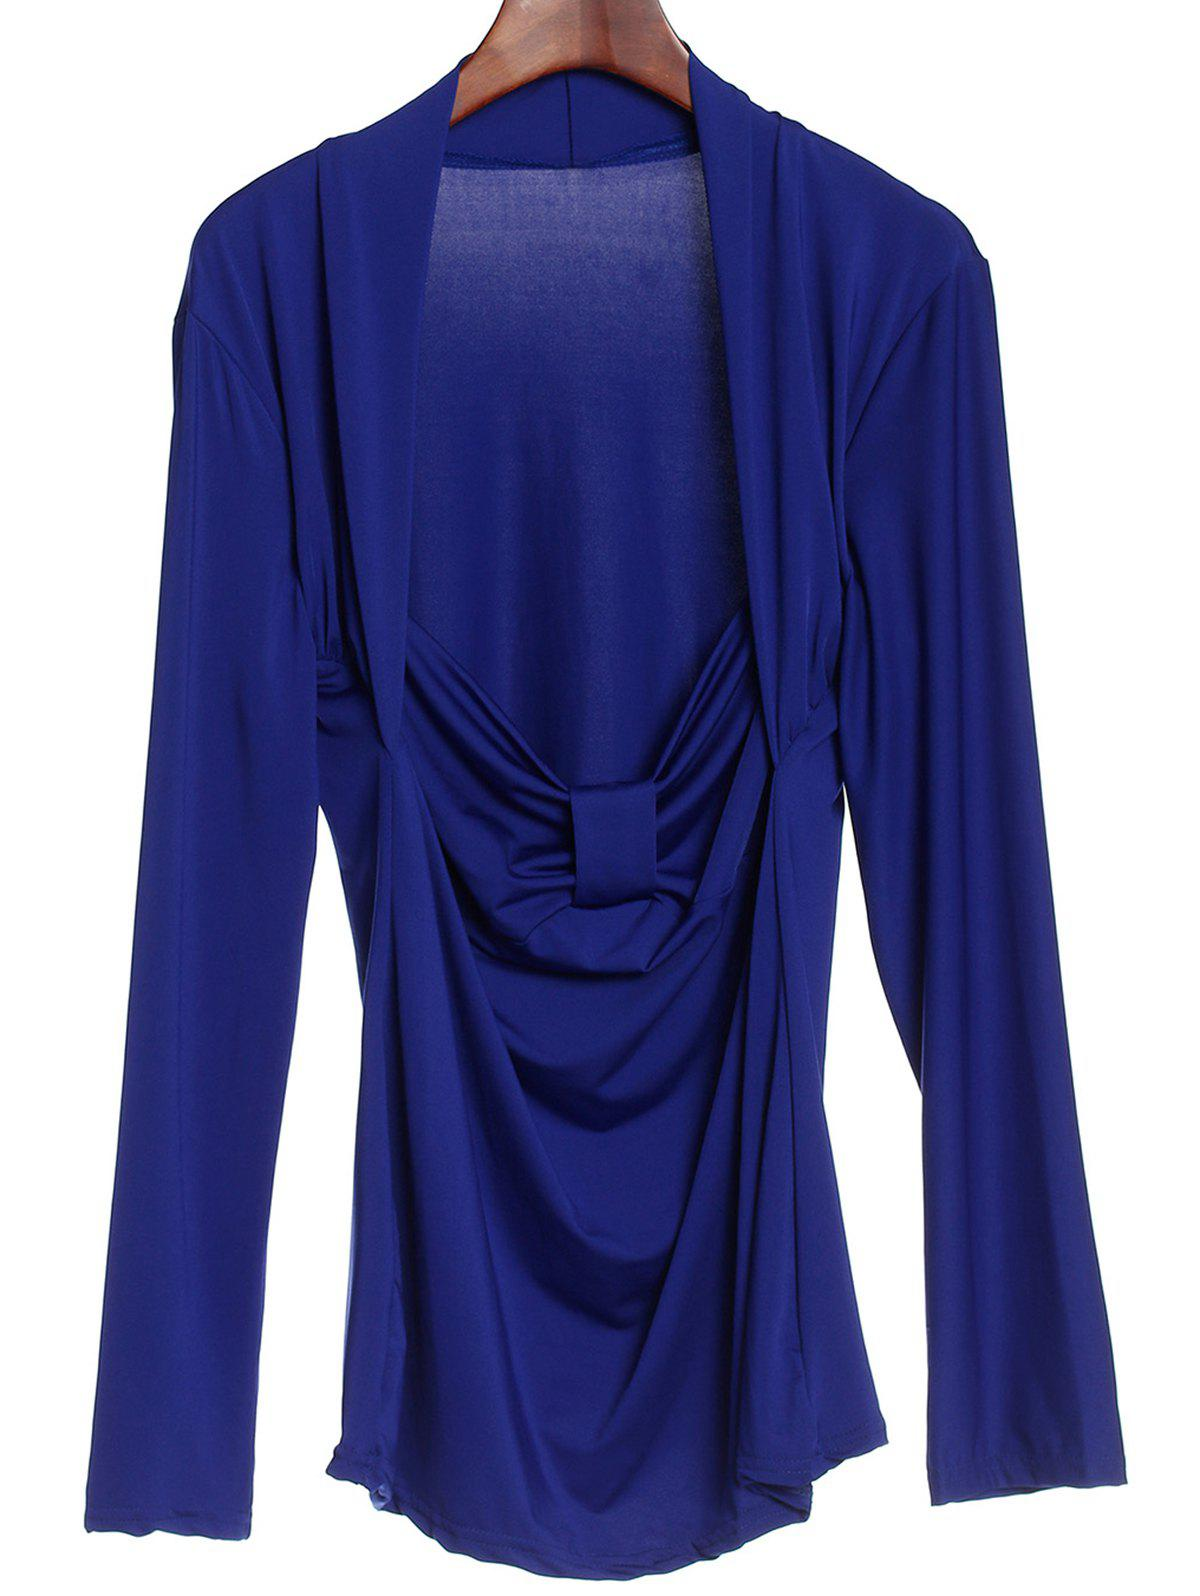 Sexy Women's Sweetheart Neck Long Sleeve Ruched T-Shirt - BLUE M